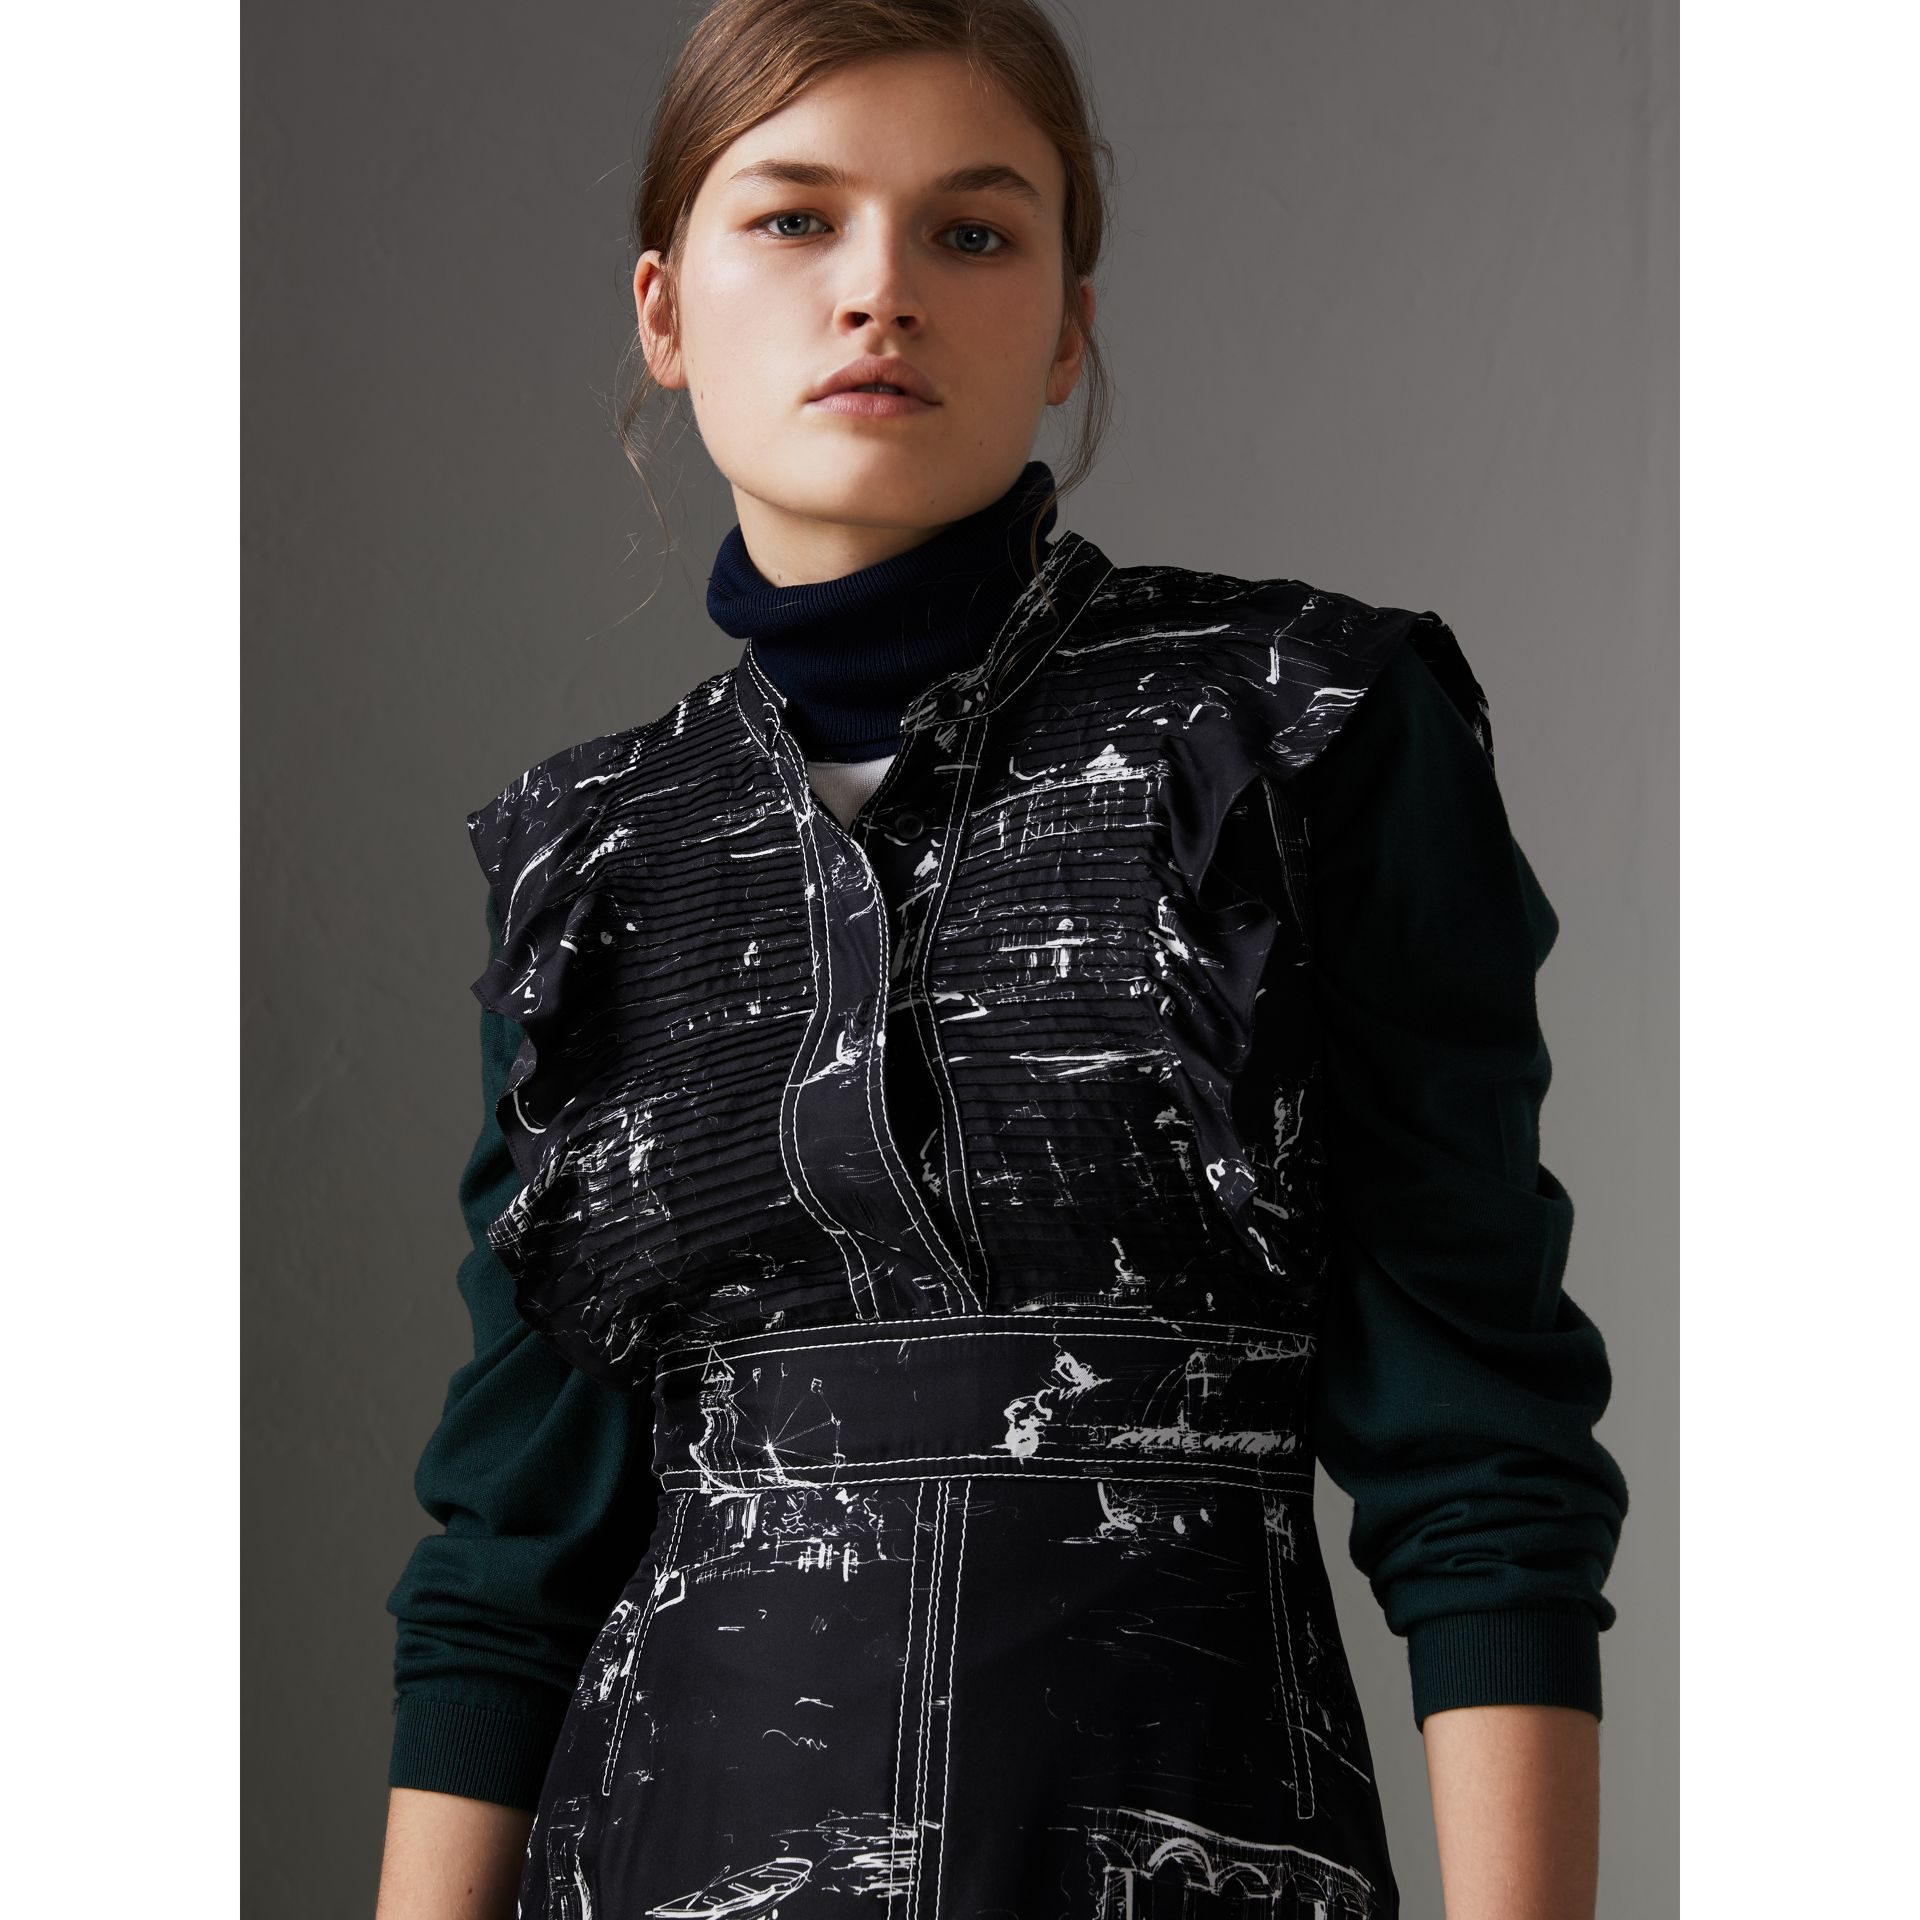 Ruffle Detail Landmark Print Silk Dress in Black - Women | Burberry United States - gallery image 1